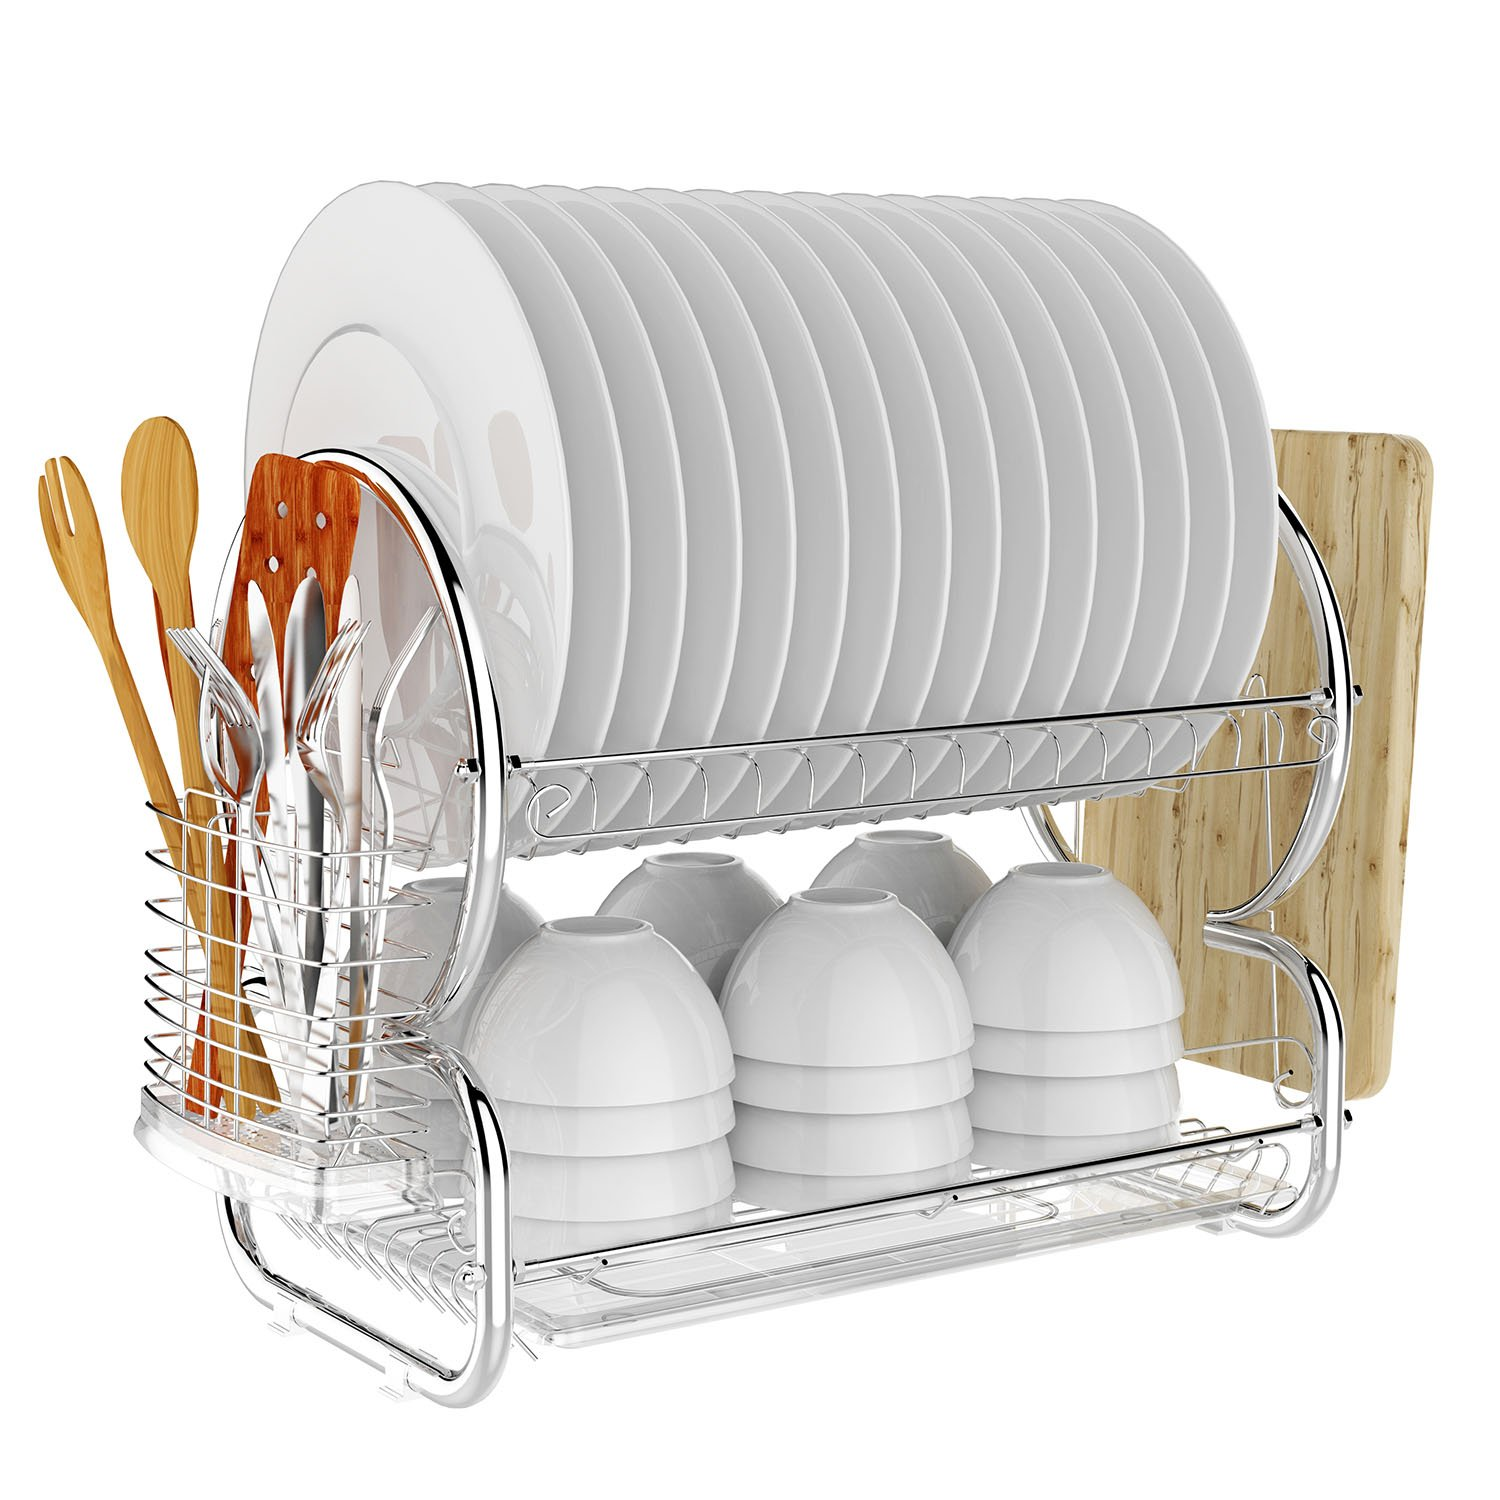 Amazon com bathwa 2 tier stainless steel dish rack drainer board set dish drying rack 17l x 10w x 15h inches kitchen dining